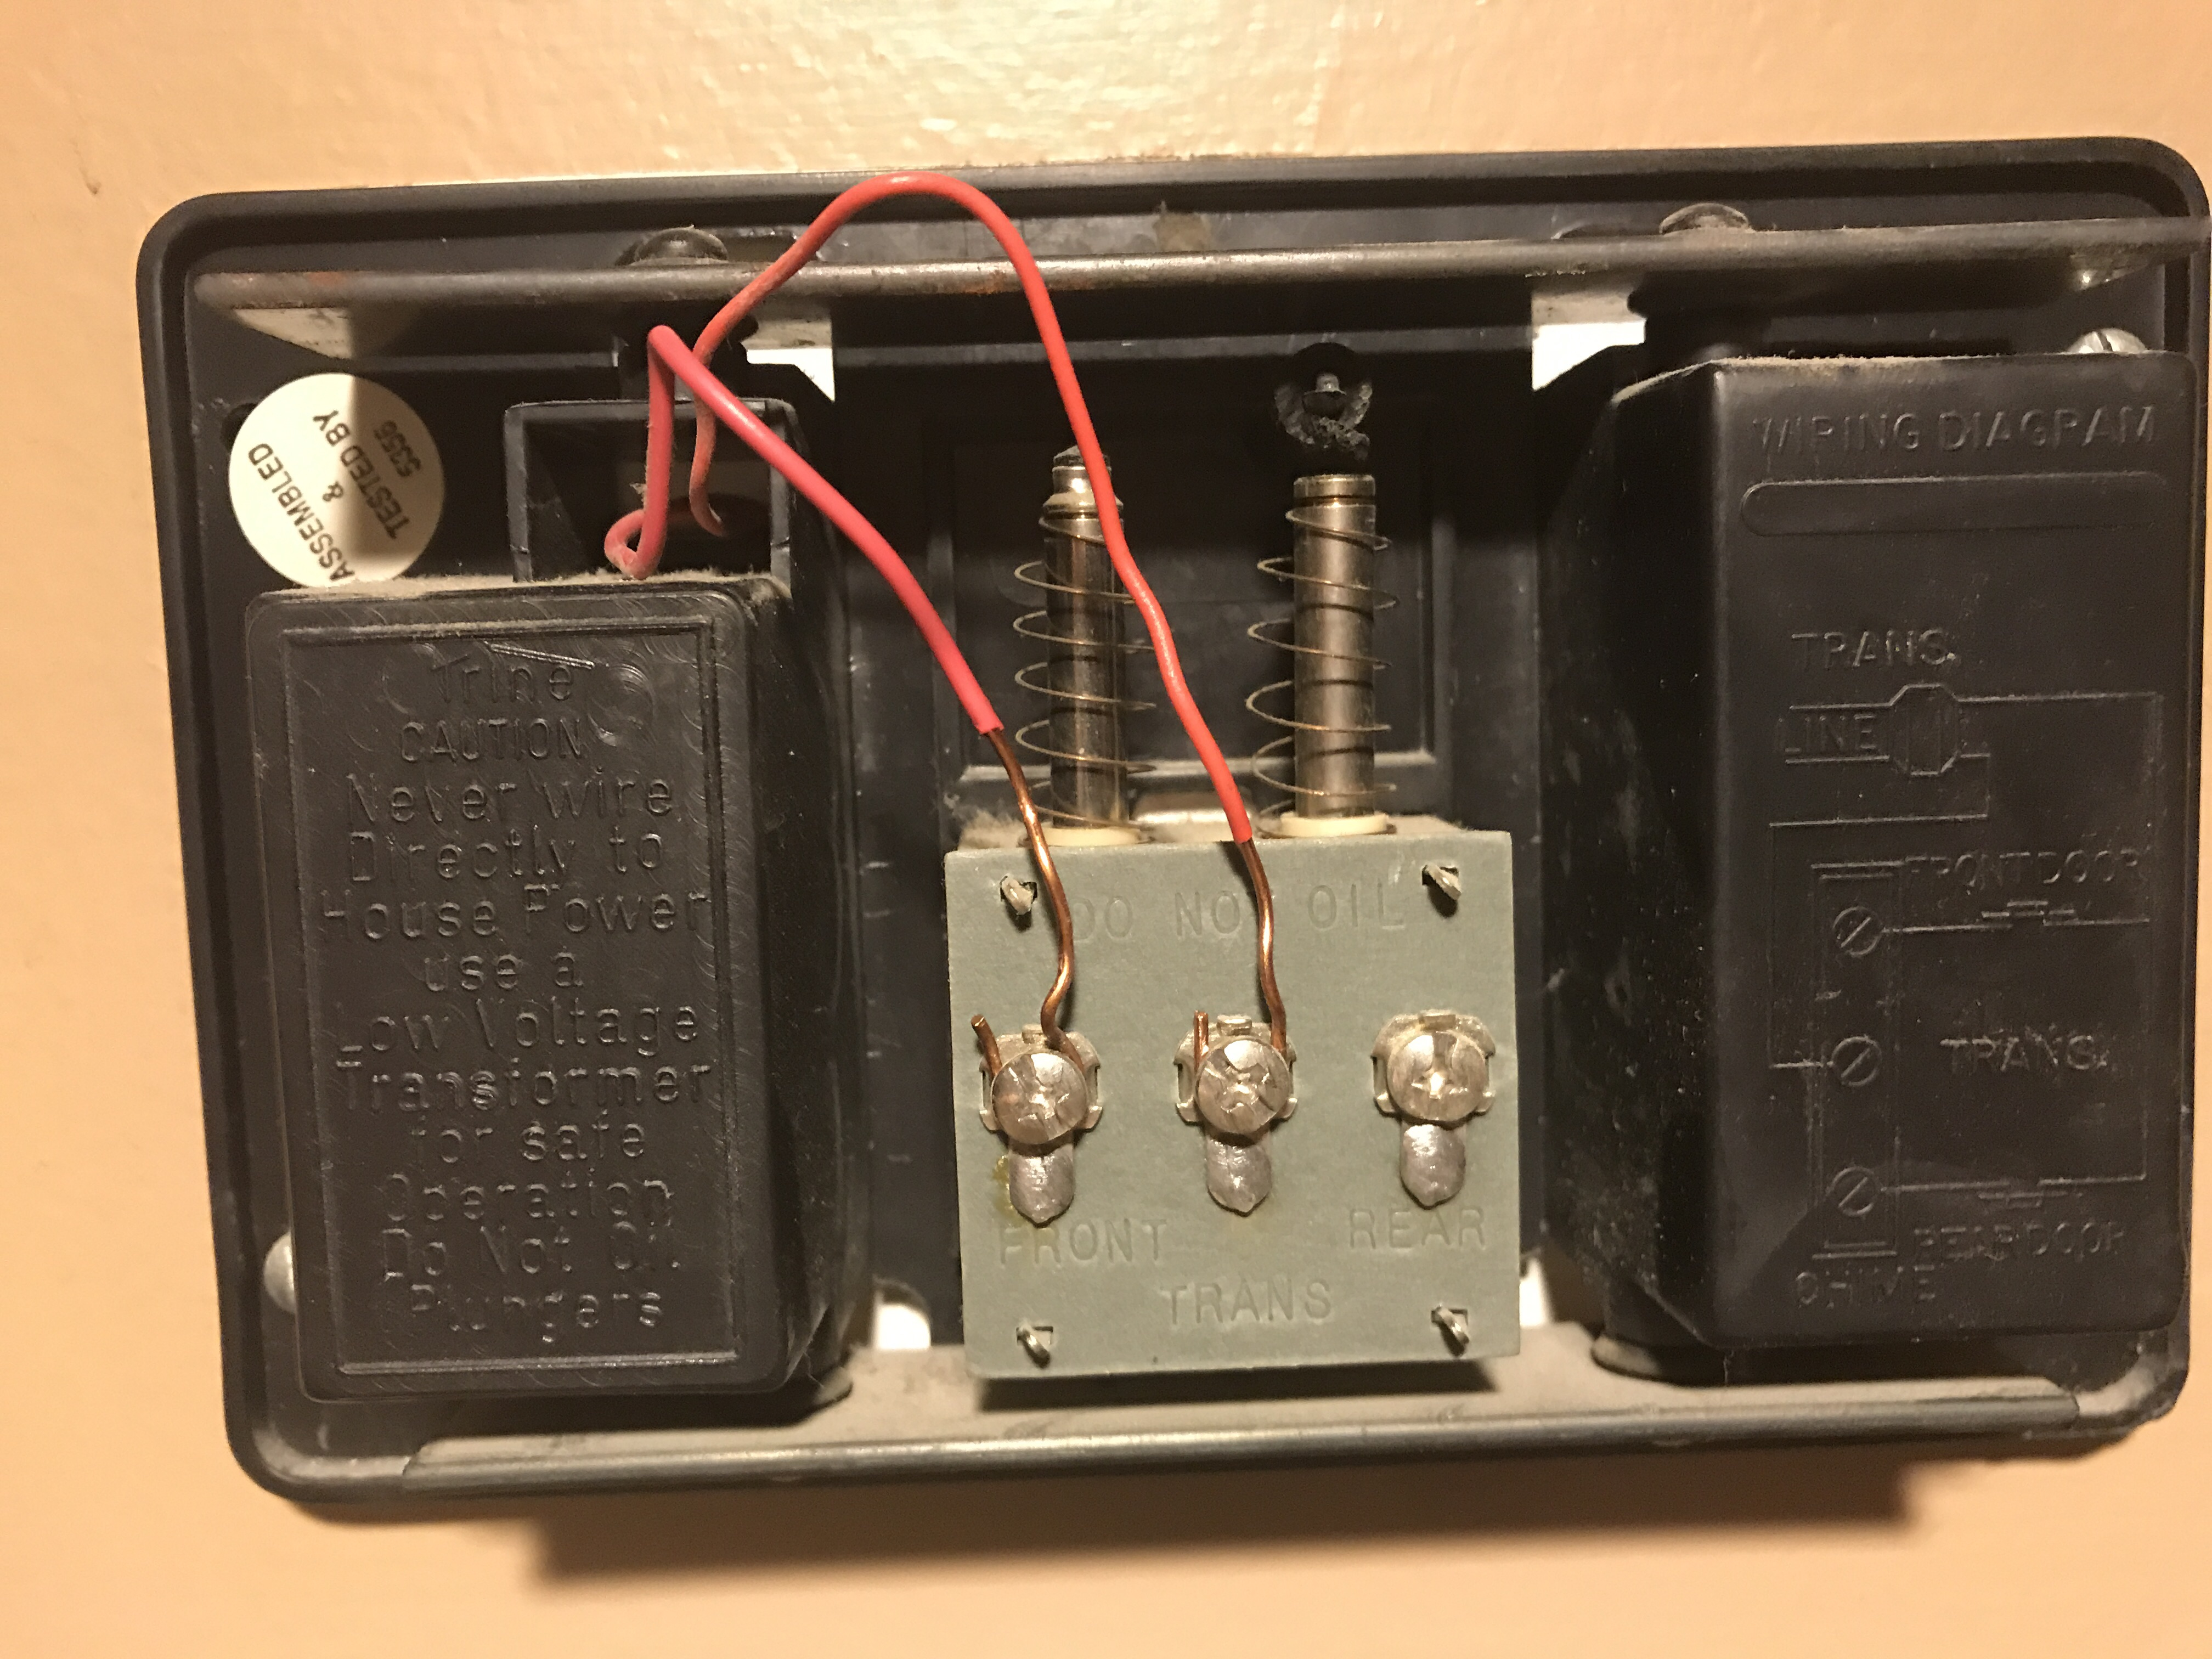 Doorbell Transformer Buzzing Gen3 Electric 215 3525963 How To Wire A Electrical Diy Chatroom Home Greet Causes Door Chime Buzzhum Loud And